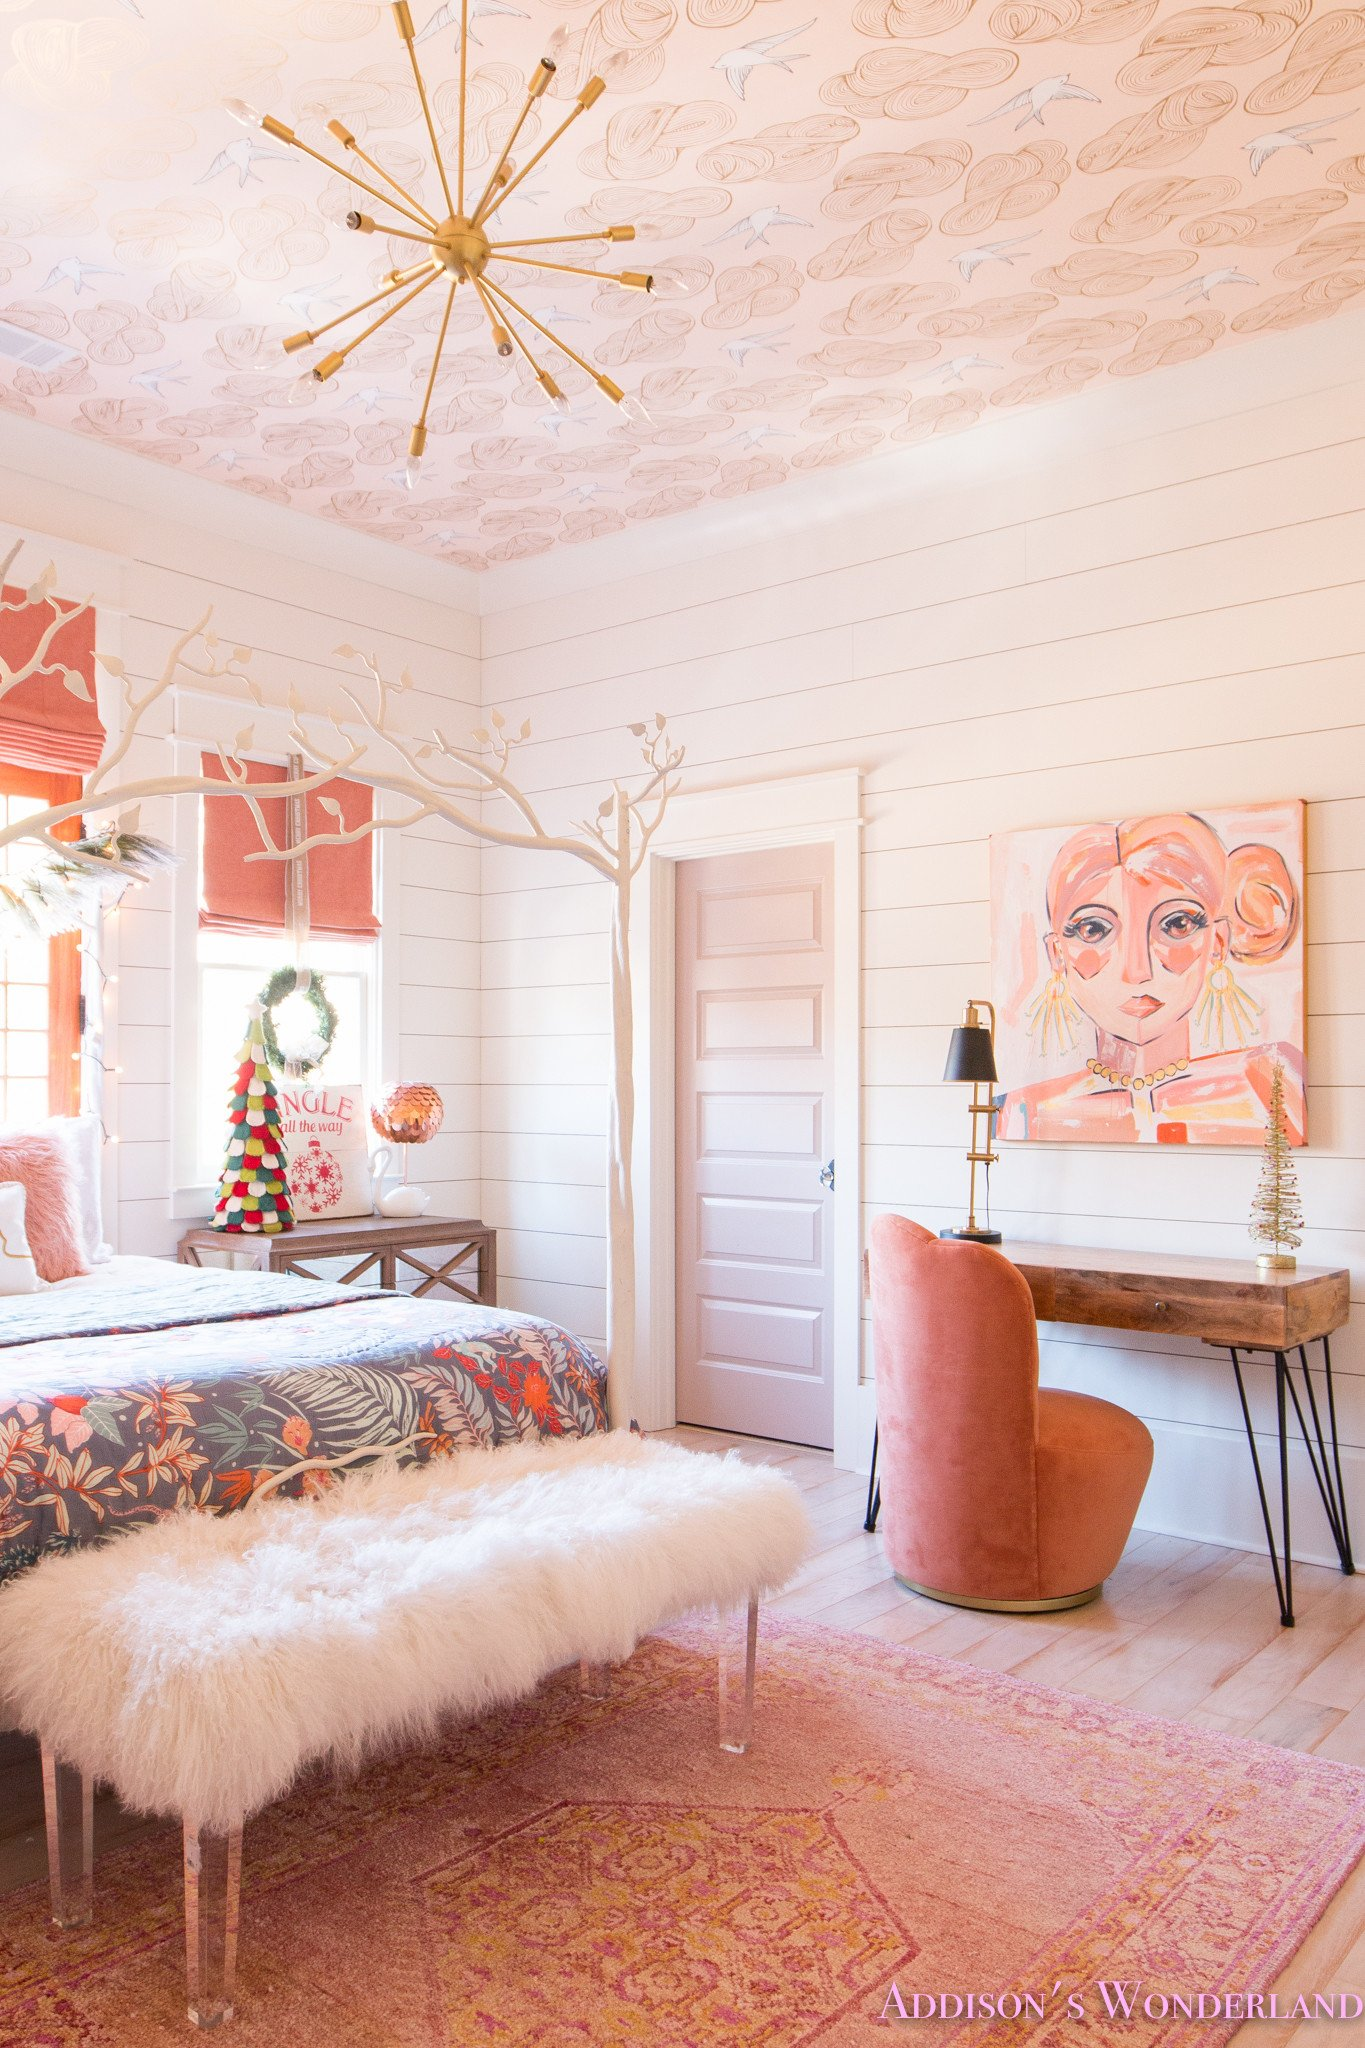 Decor for Little Girls Rooms Awesome A Little Christmas Decor In Addison S Coral Girl S Bedroom with Shaw Floors